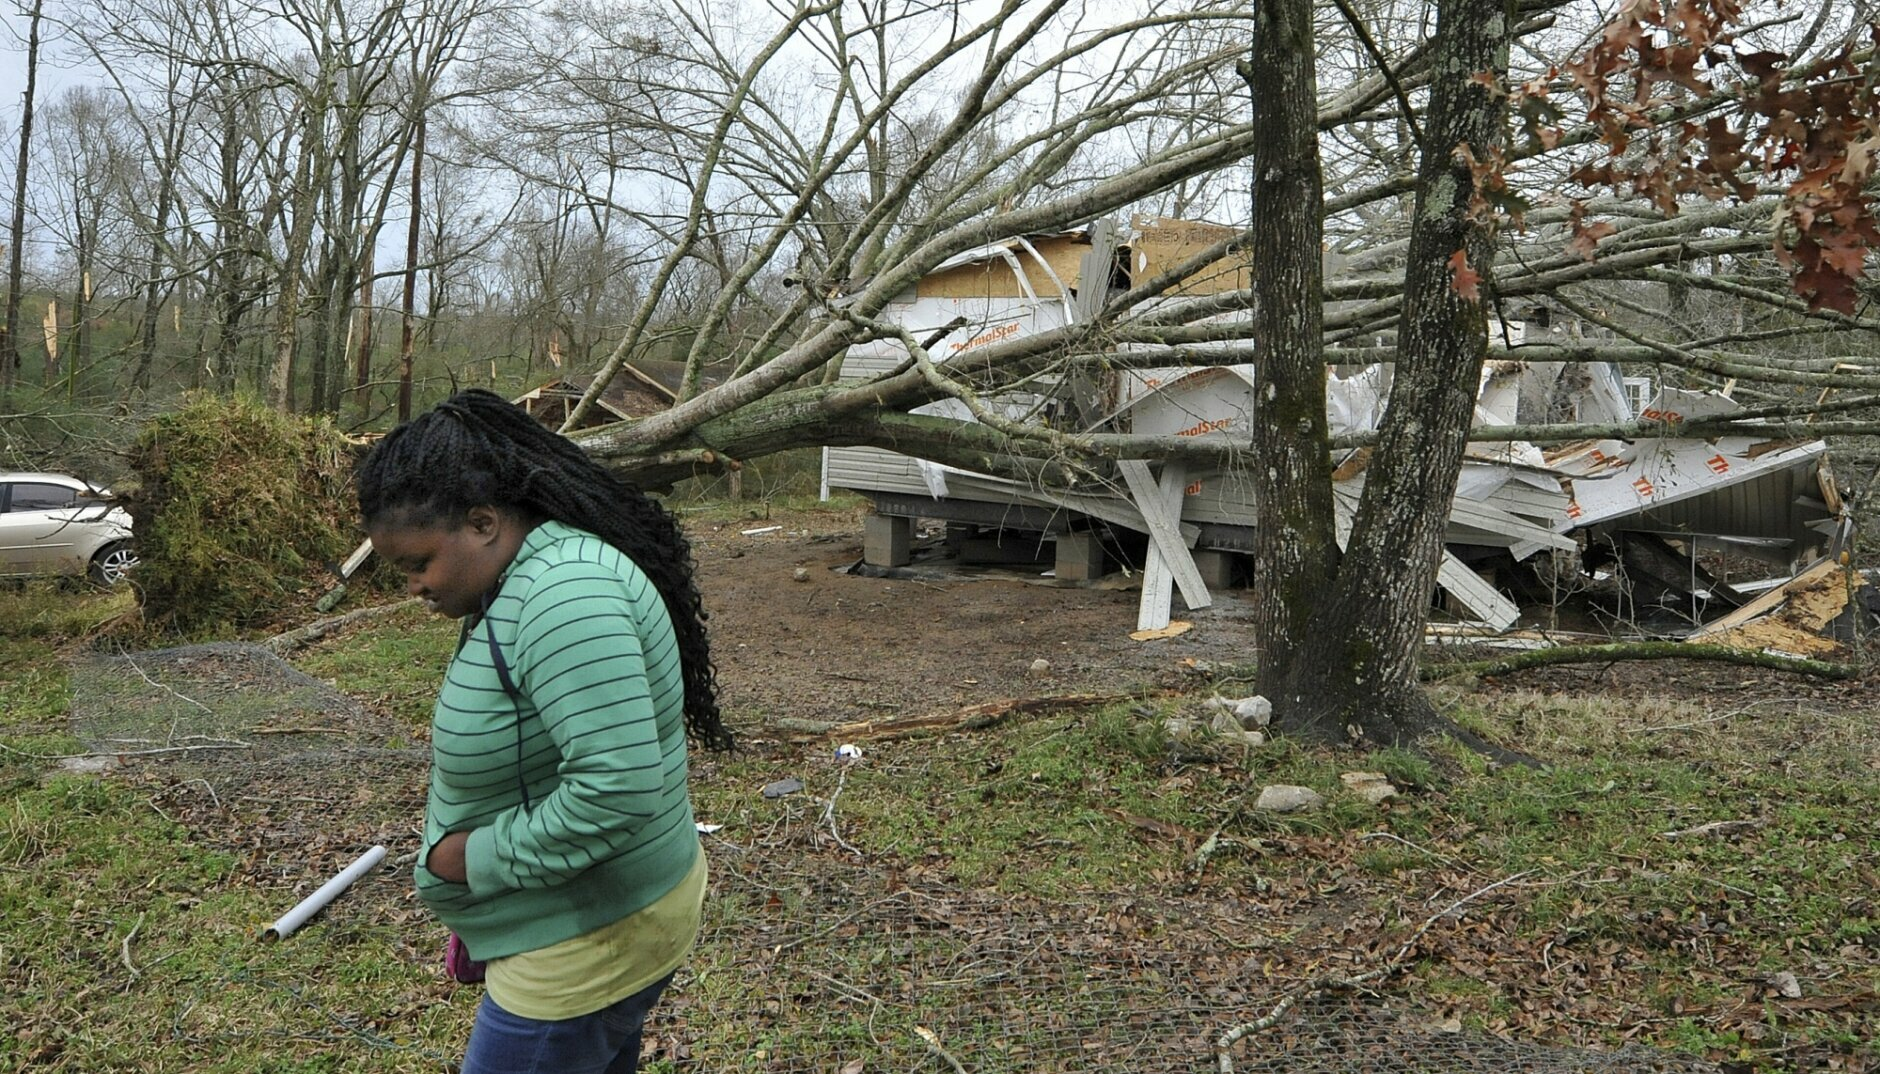 3 Dead As Suspected Twisters Other Storms Batter The South Wtop